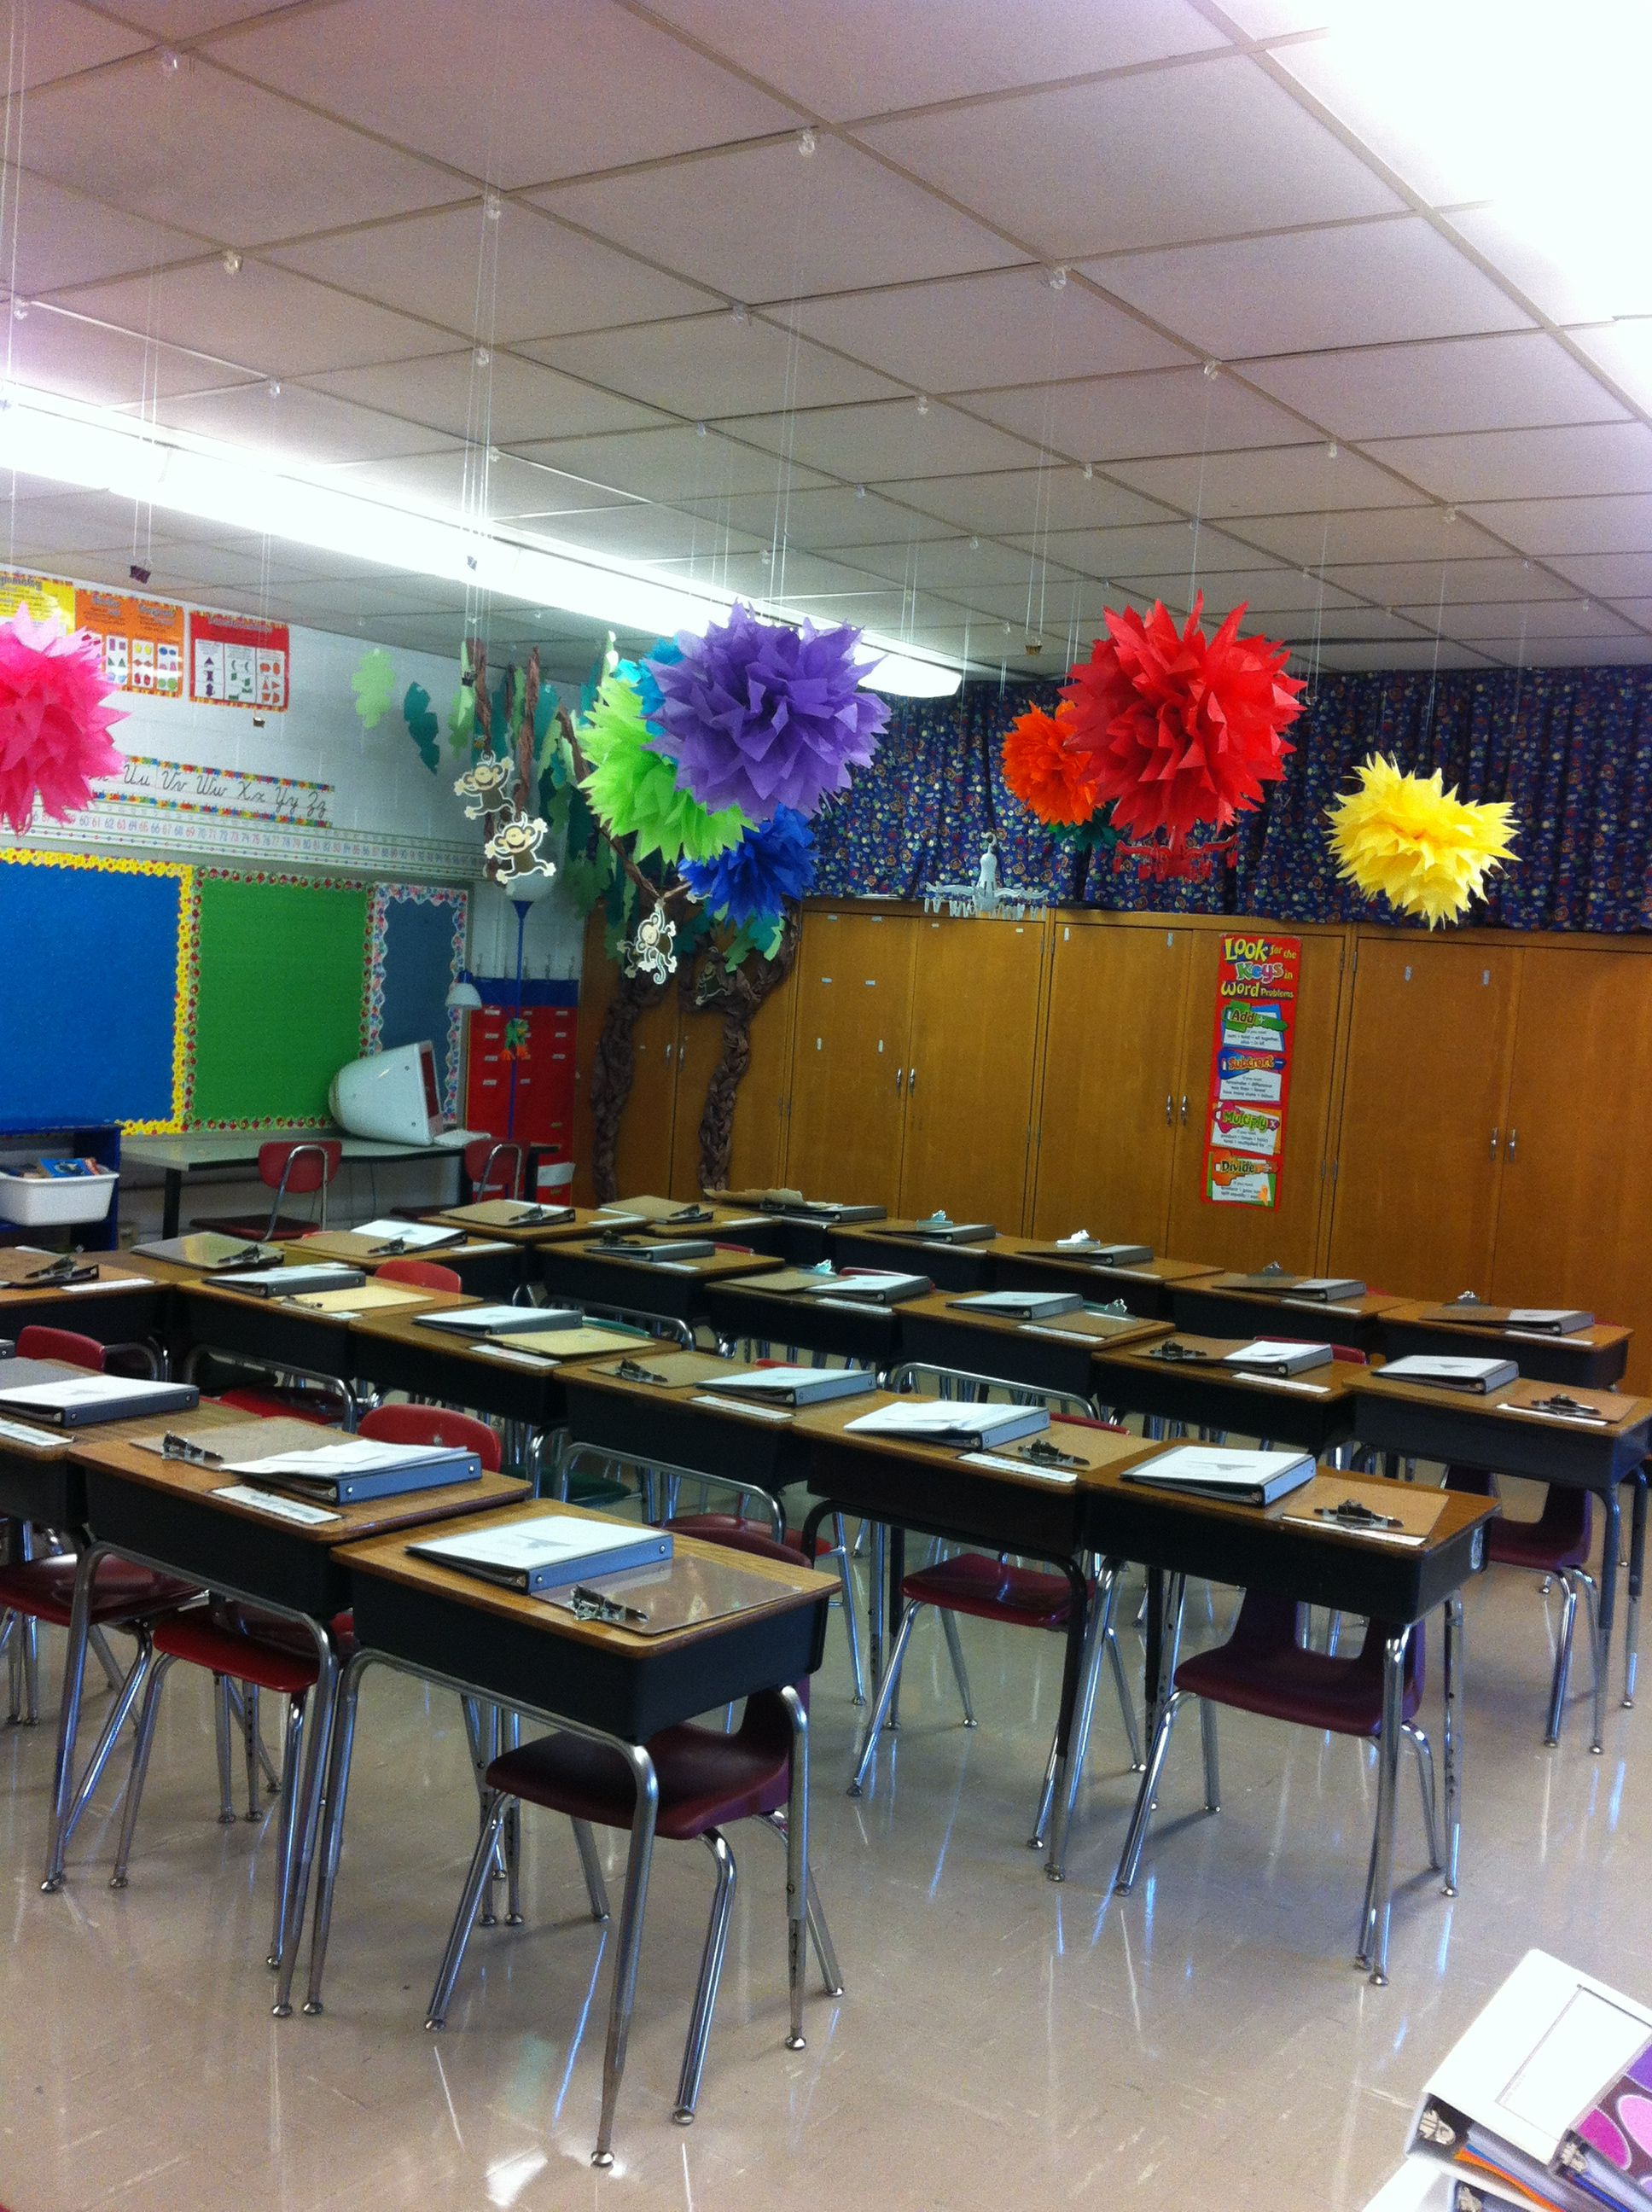 Innovative Classroom Architecture : Ceiling classroom decorations innovative